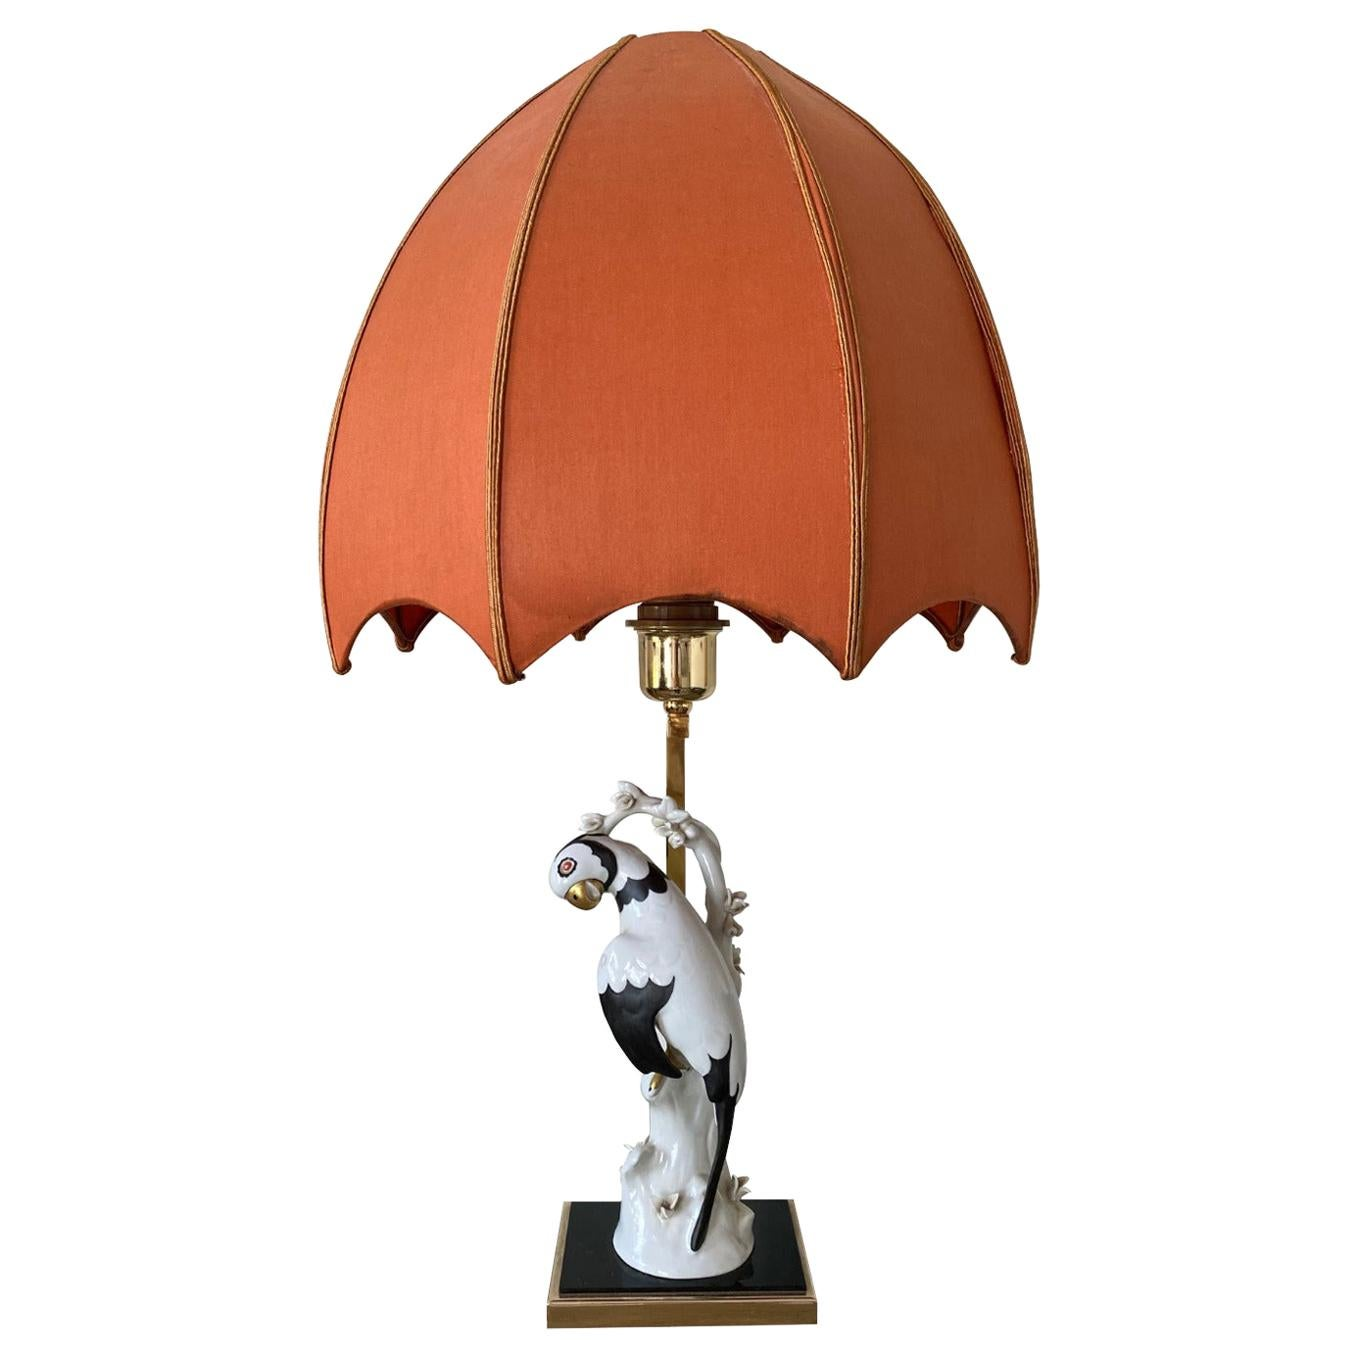 Manufattura Porcellane Artistiche, Hand Painted Italian Porcelain Table Lamp